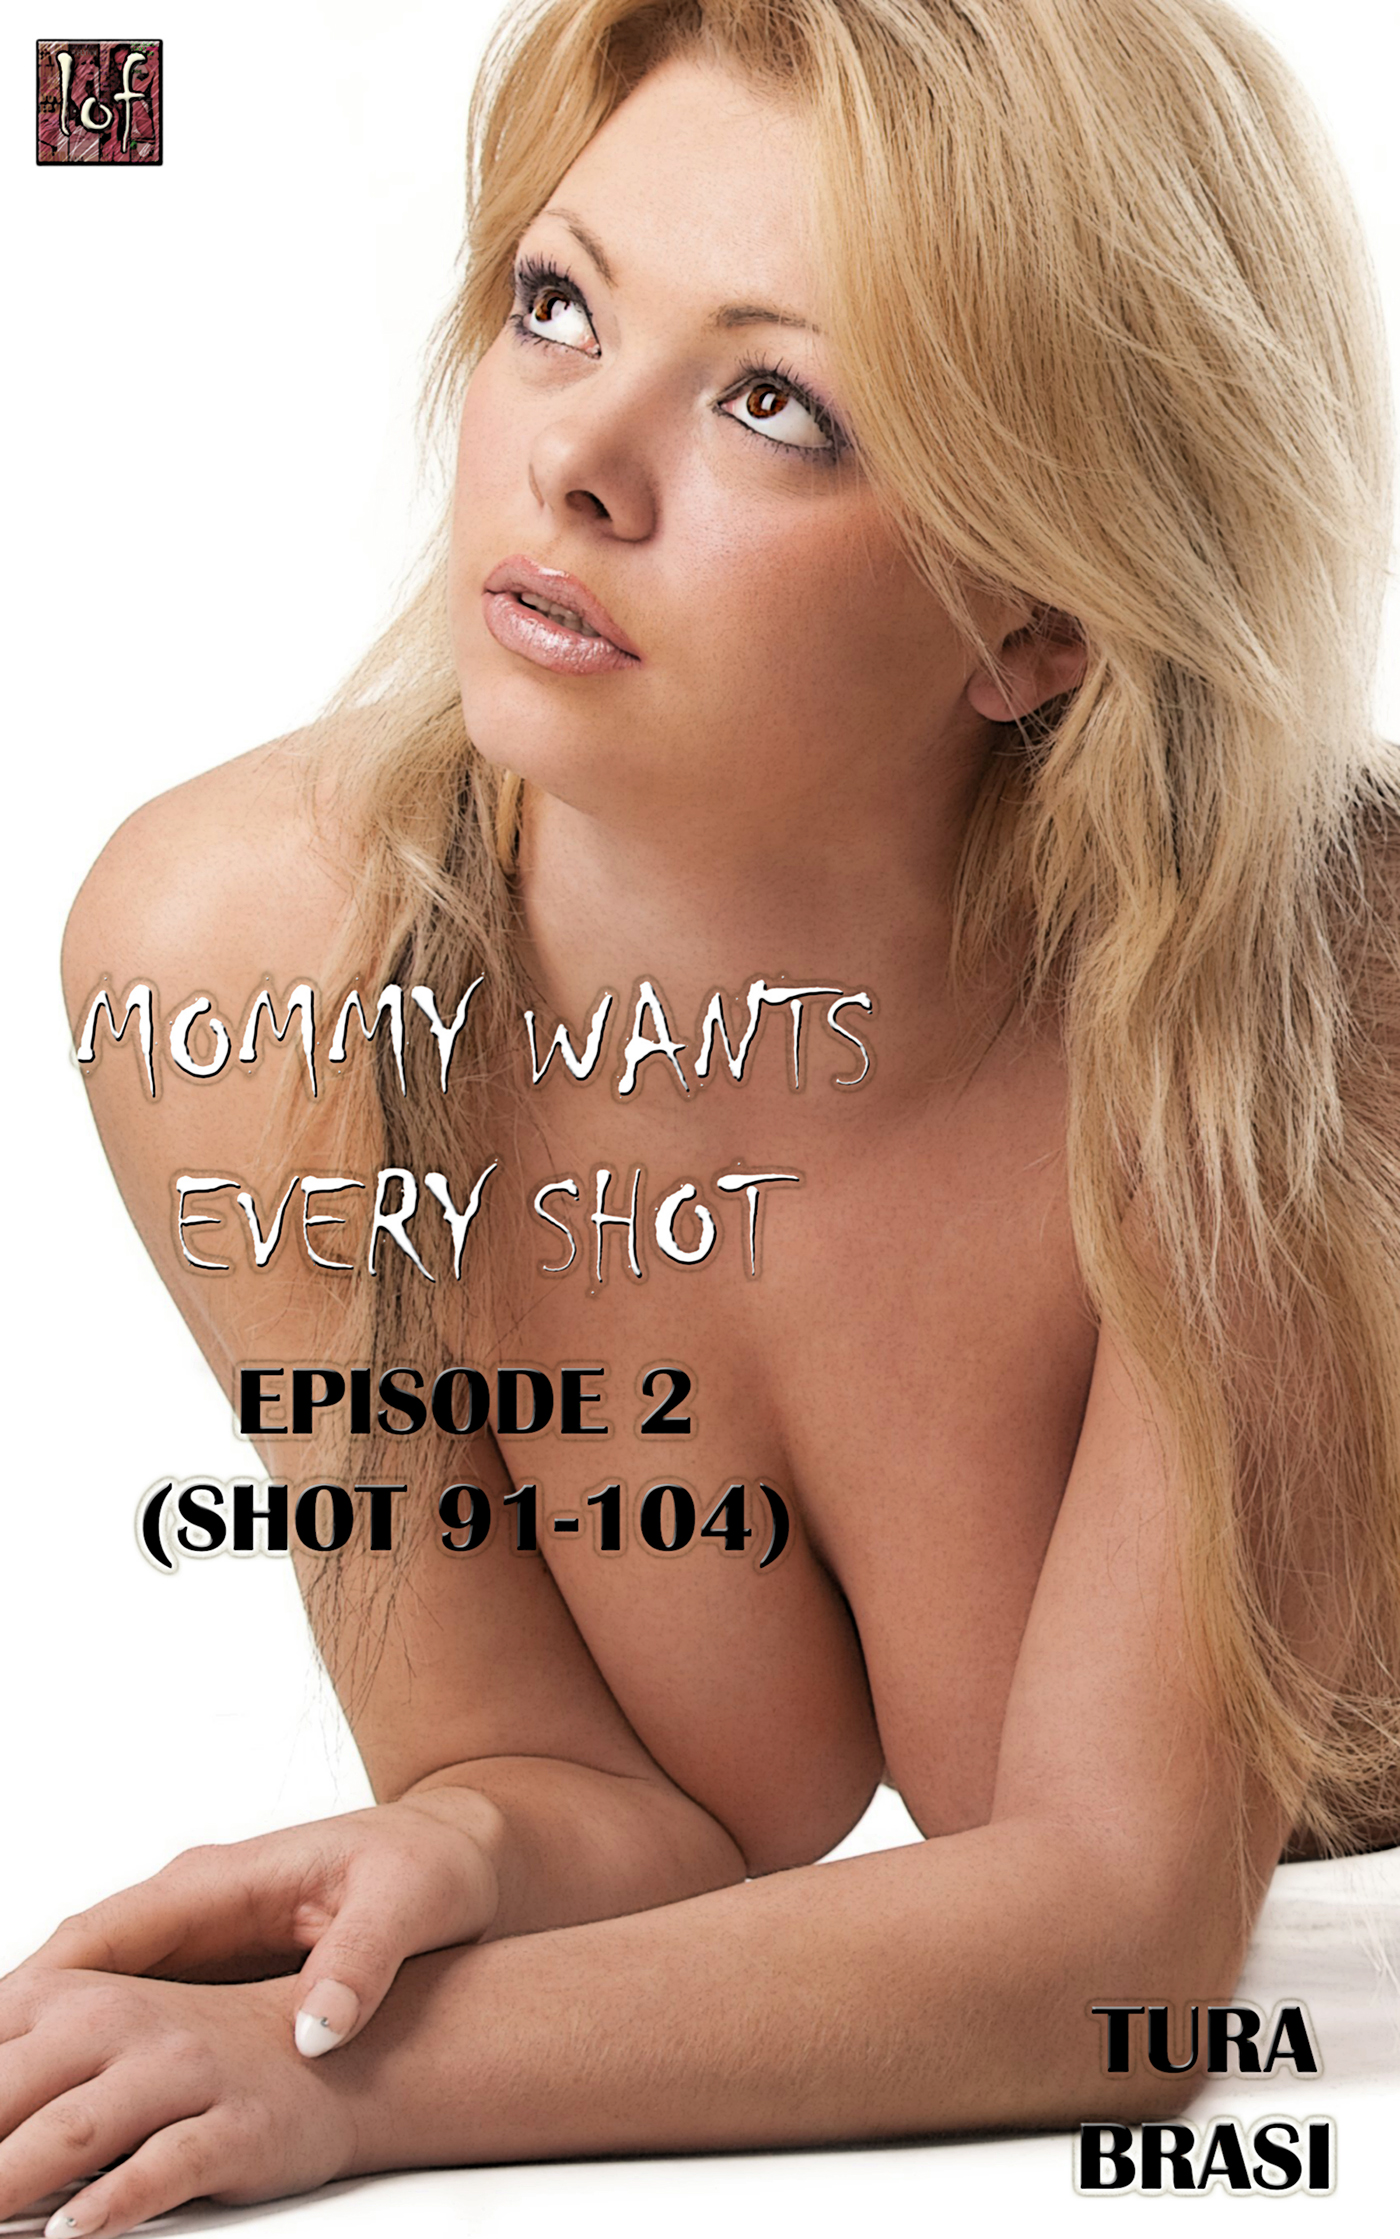 LOF New Release: Mommy Wants Every Shot: Episode 2 (Shot 91-104)